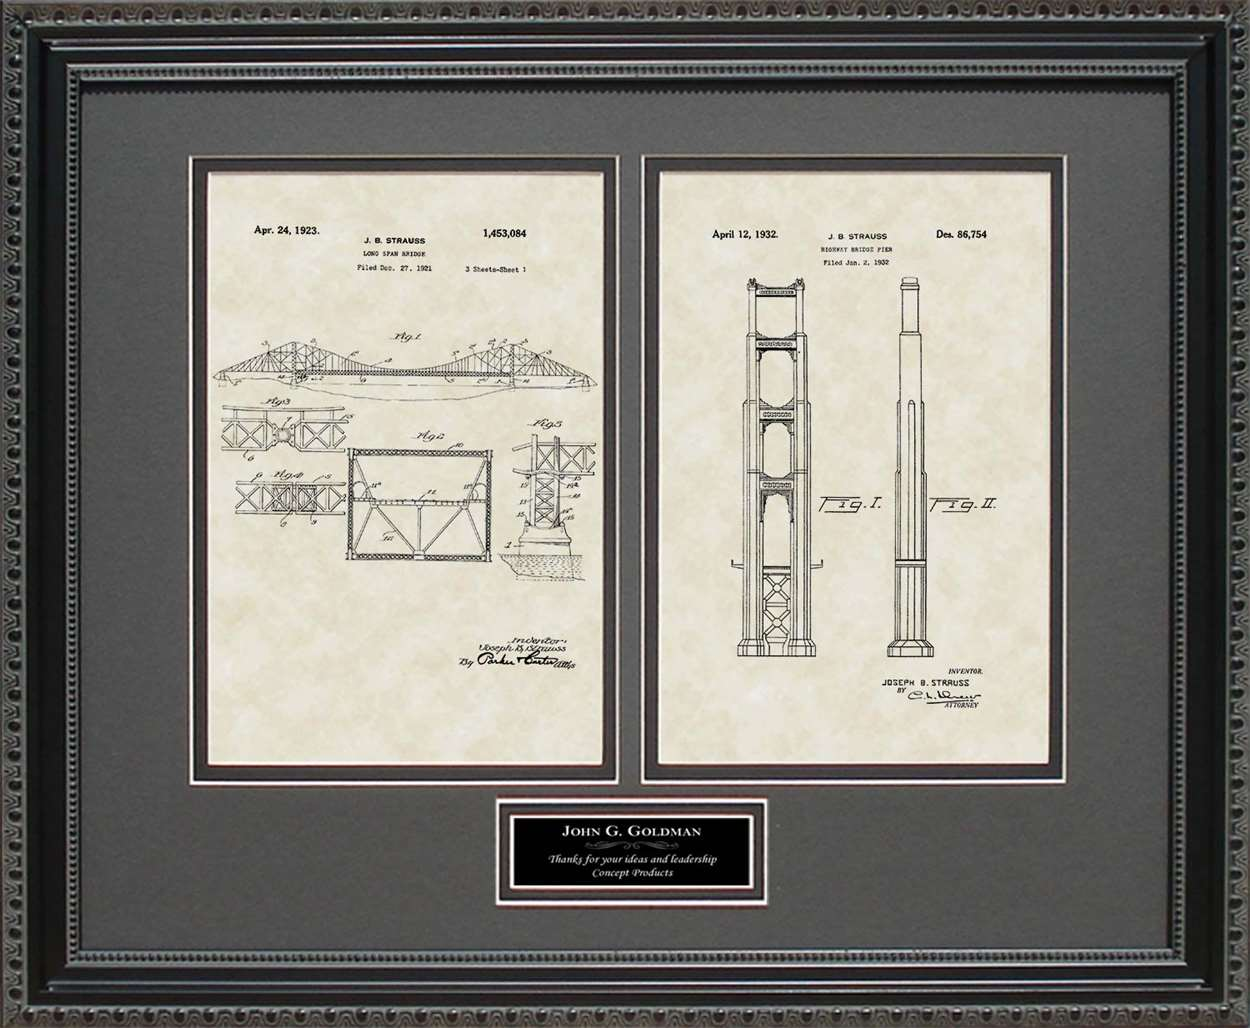 Personalized Golden Gate Bridge Span & Pier Patents, 16x20